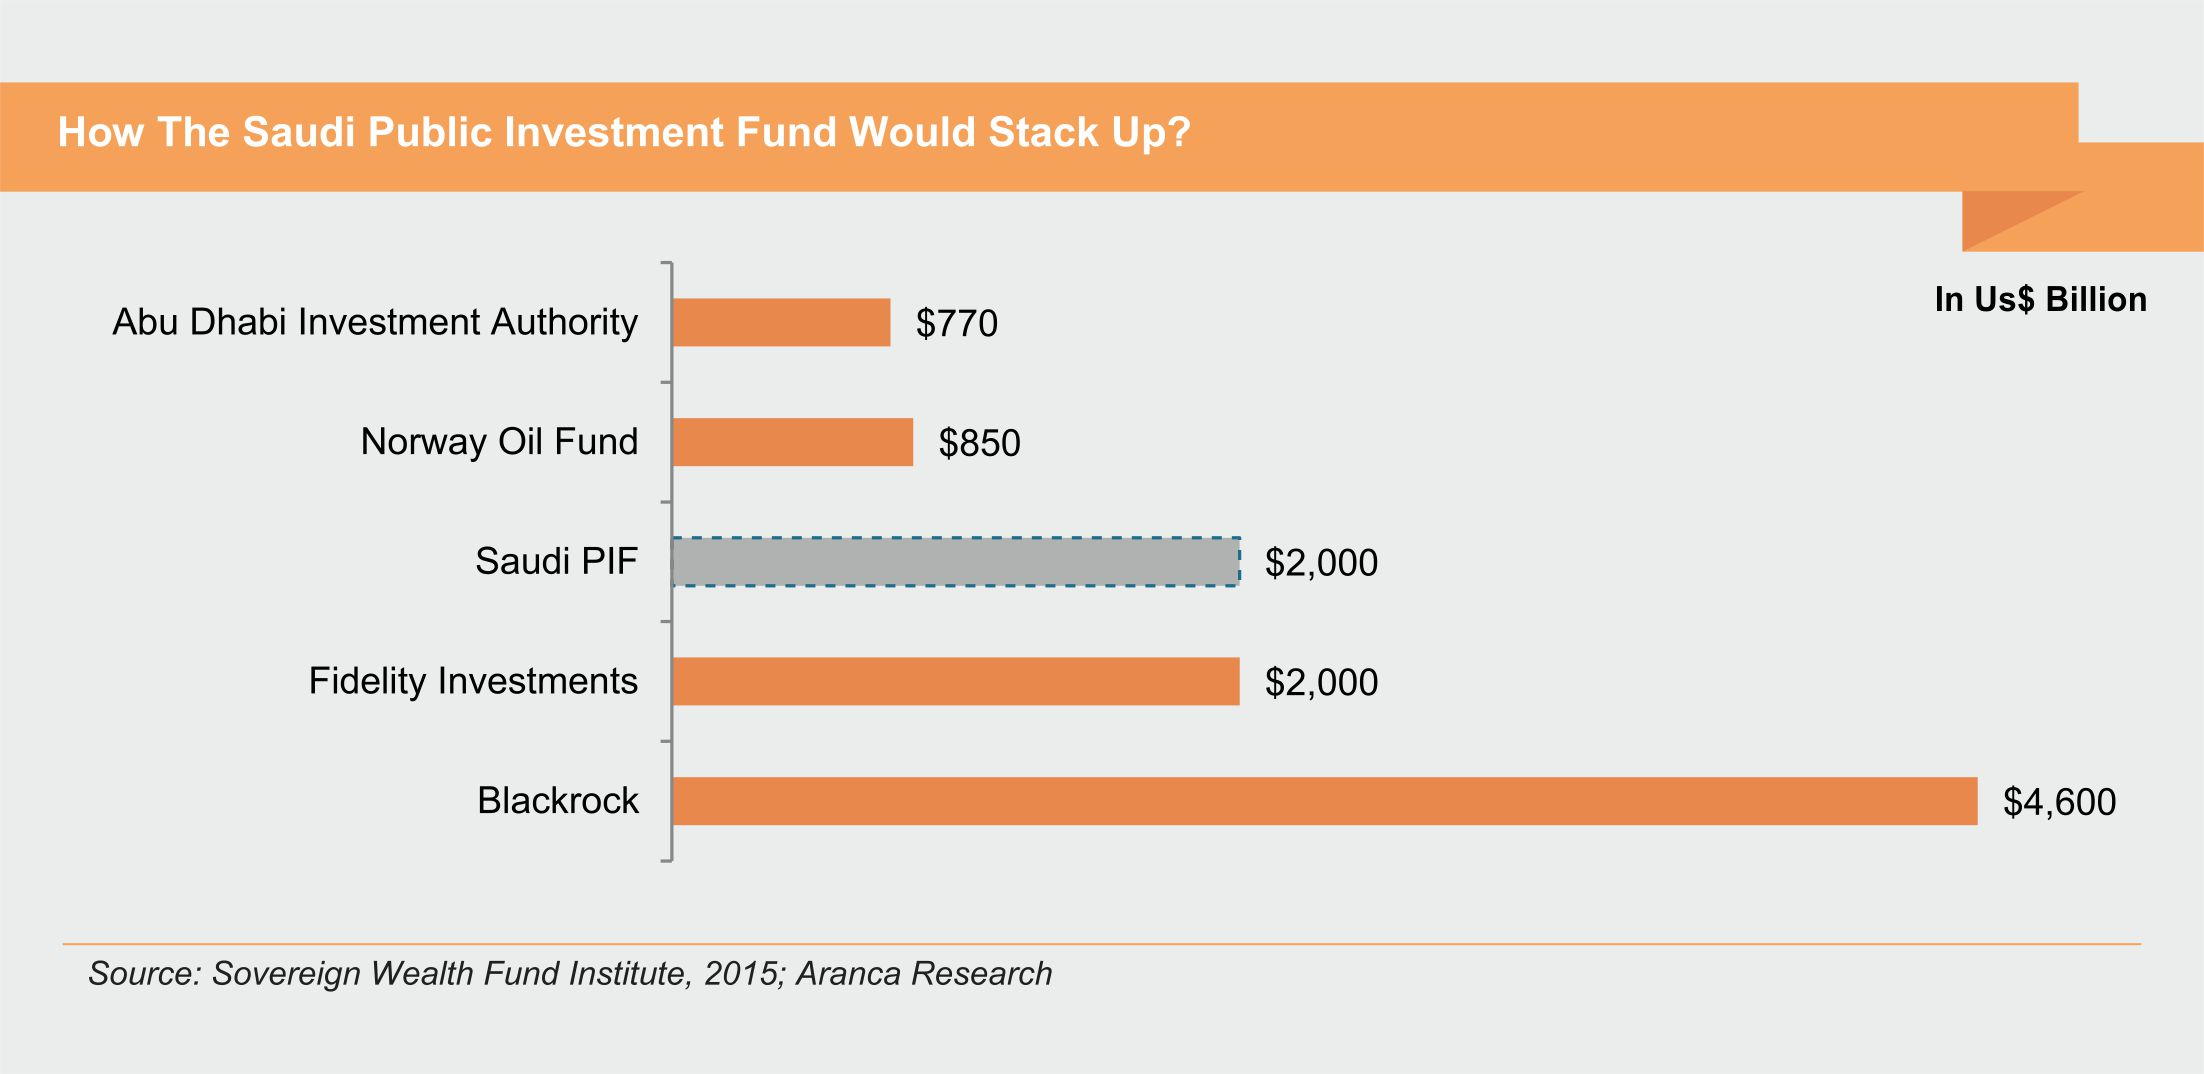 How The Saudi Public Investment Fund Would Stack Up?